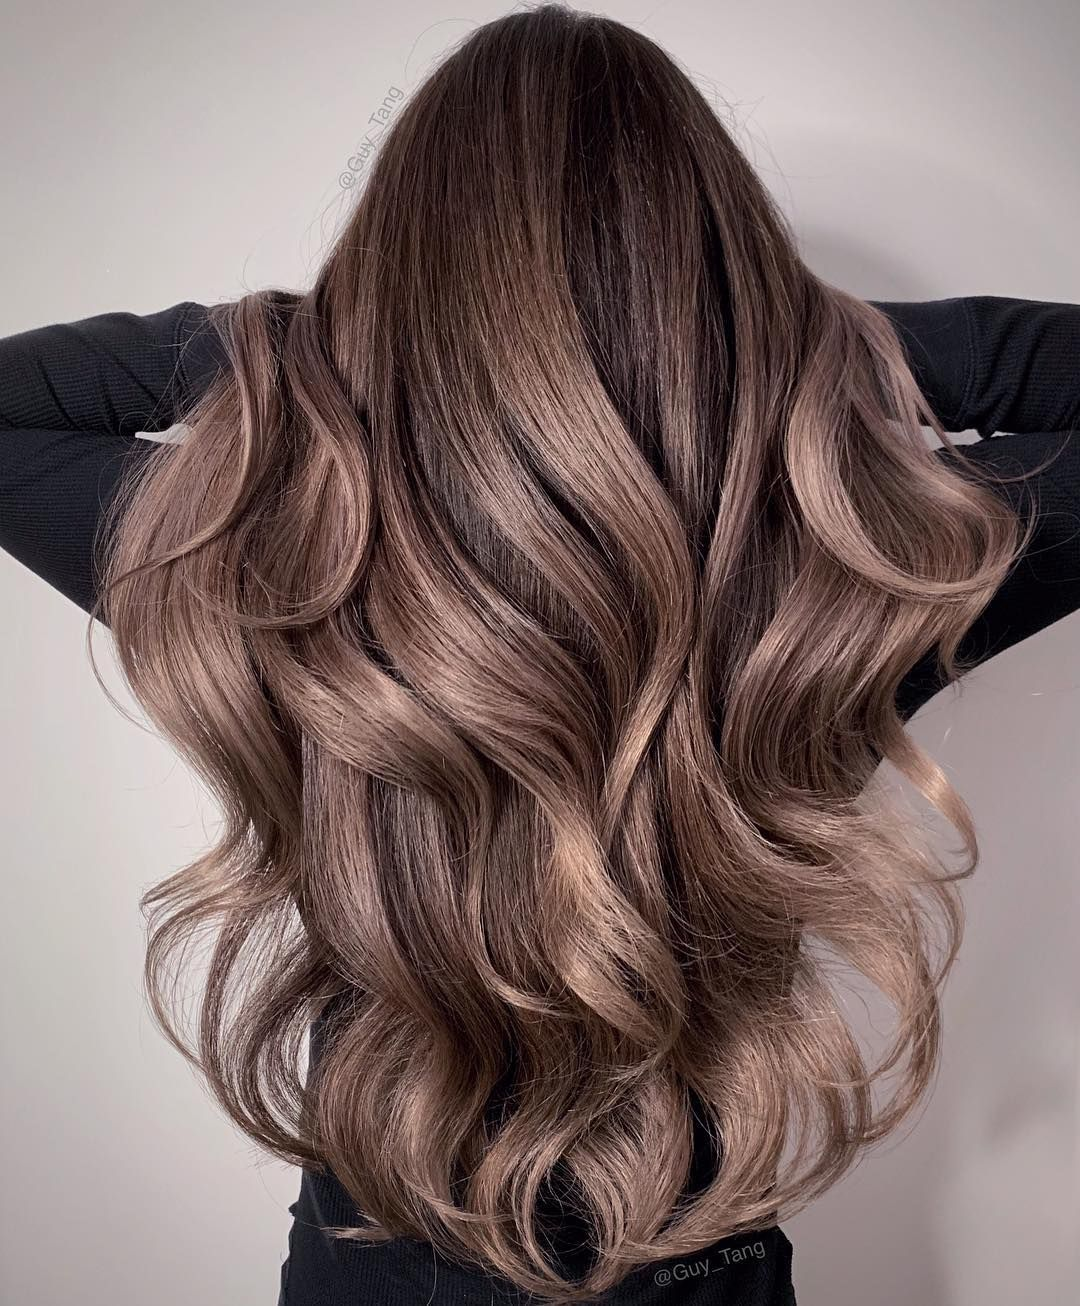 Chocolate Lilac Hair Is The Perfect Trend For Brunettes To Try